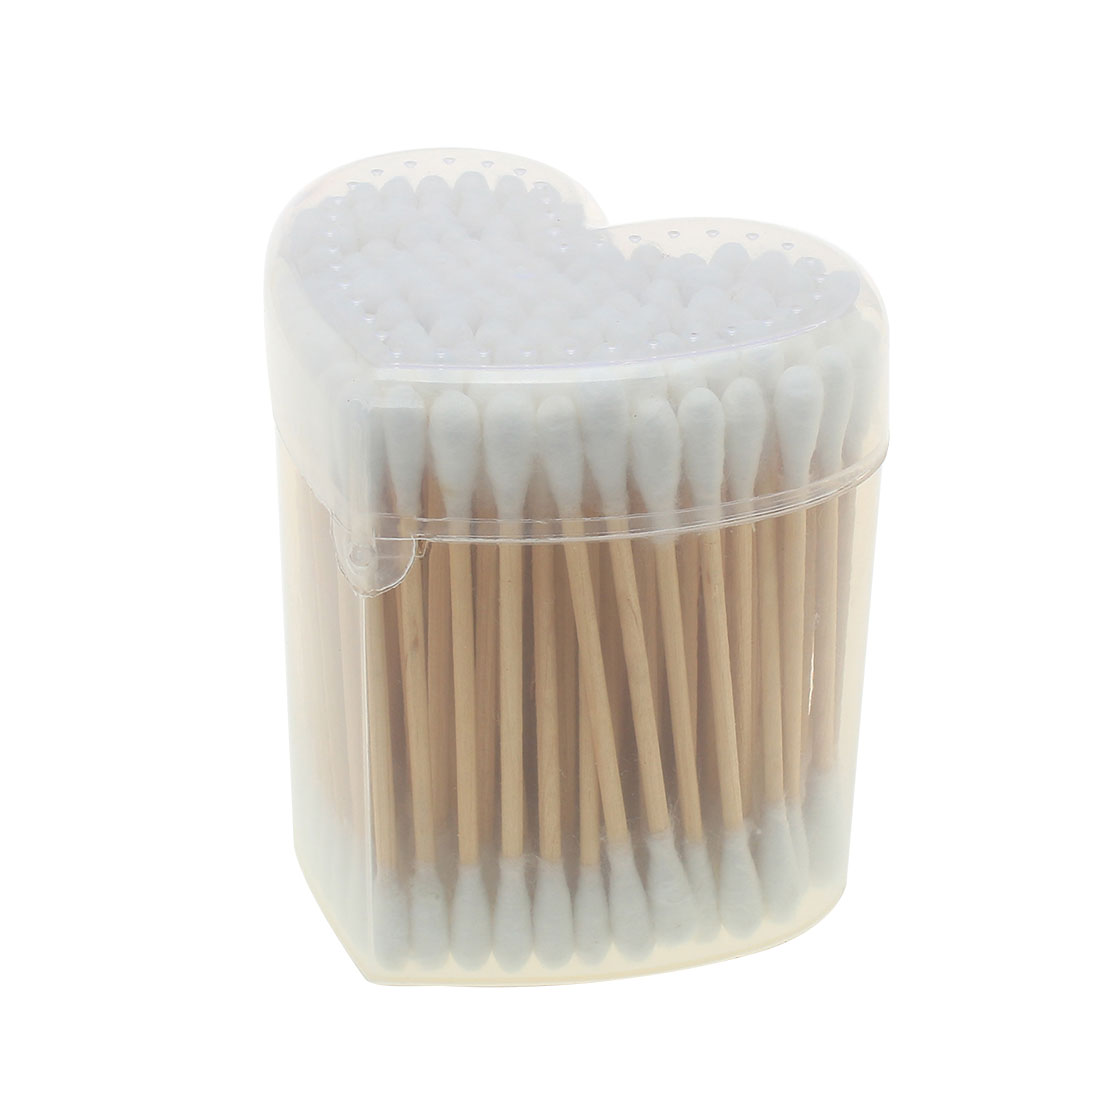 White Makeup Wood Double Head Cotton Buds Swabs 100 Pcs w Heart Shape Case